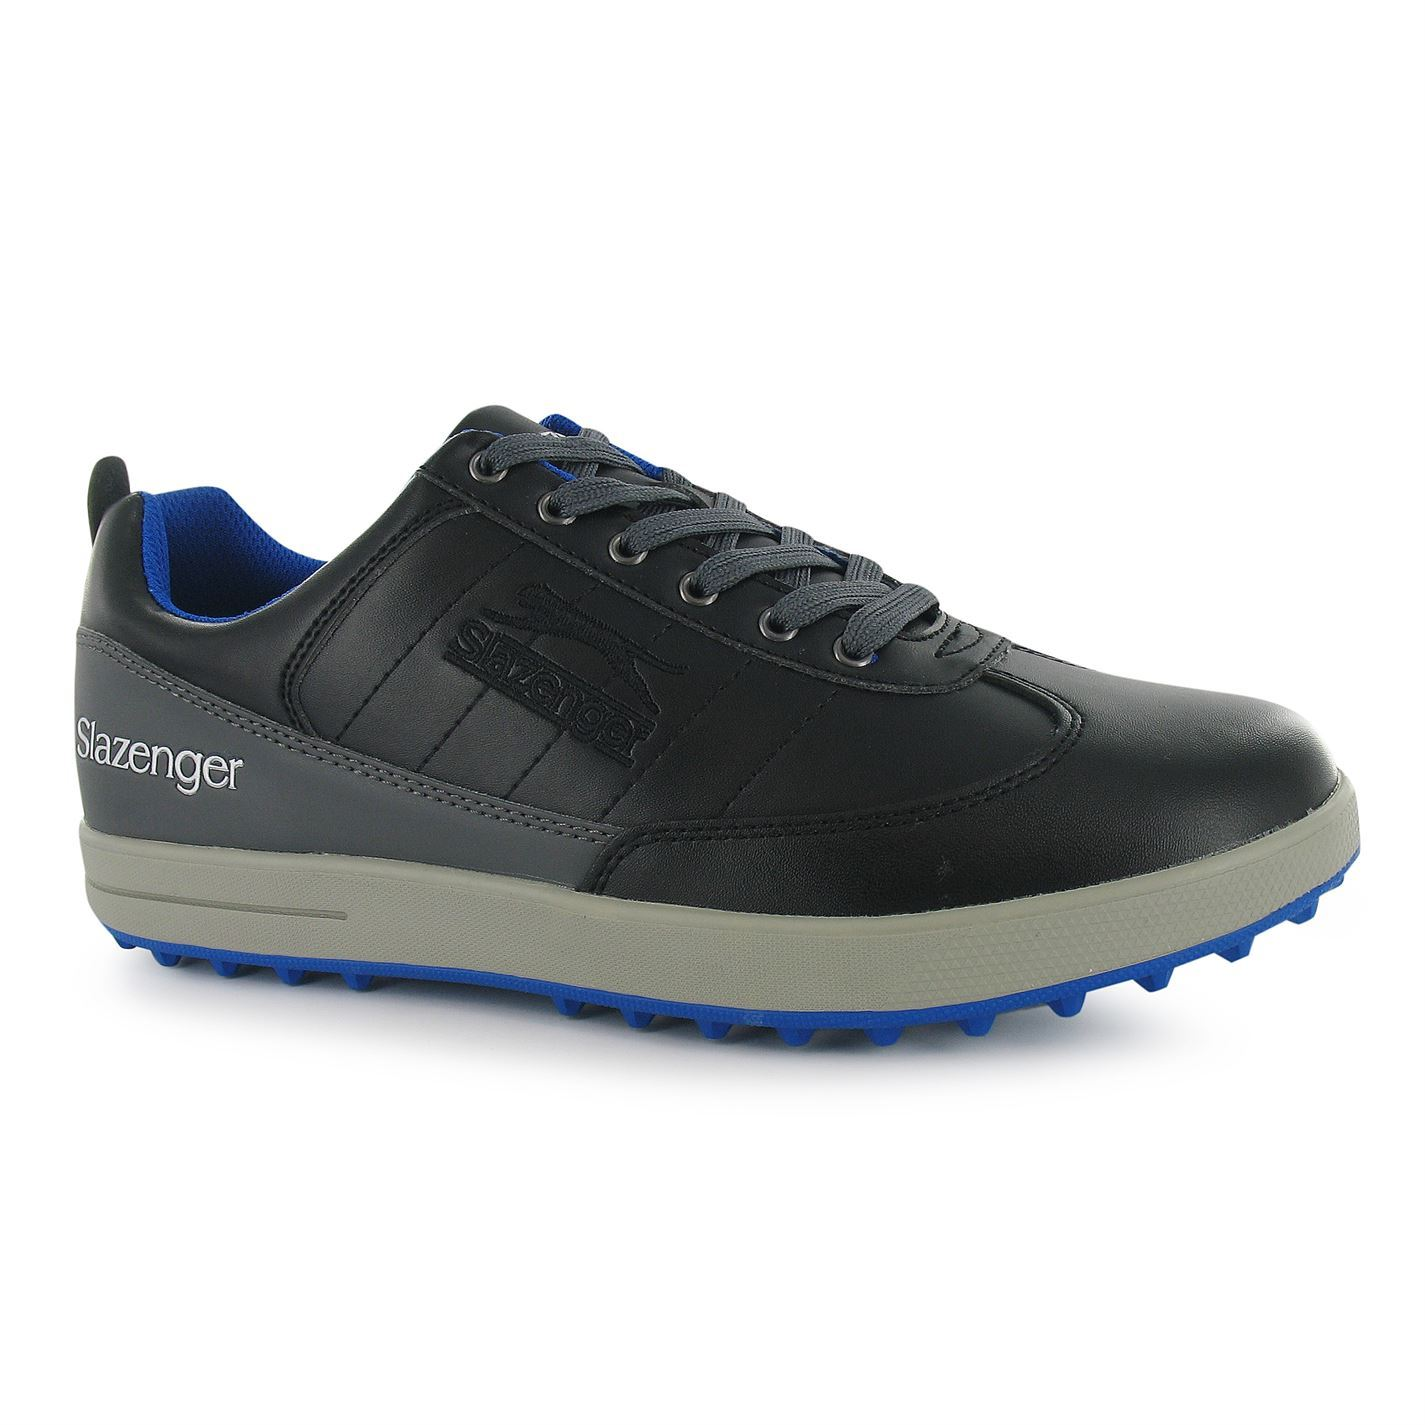 Callaway Del Mar Urban Golf Shoes